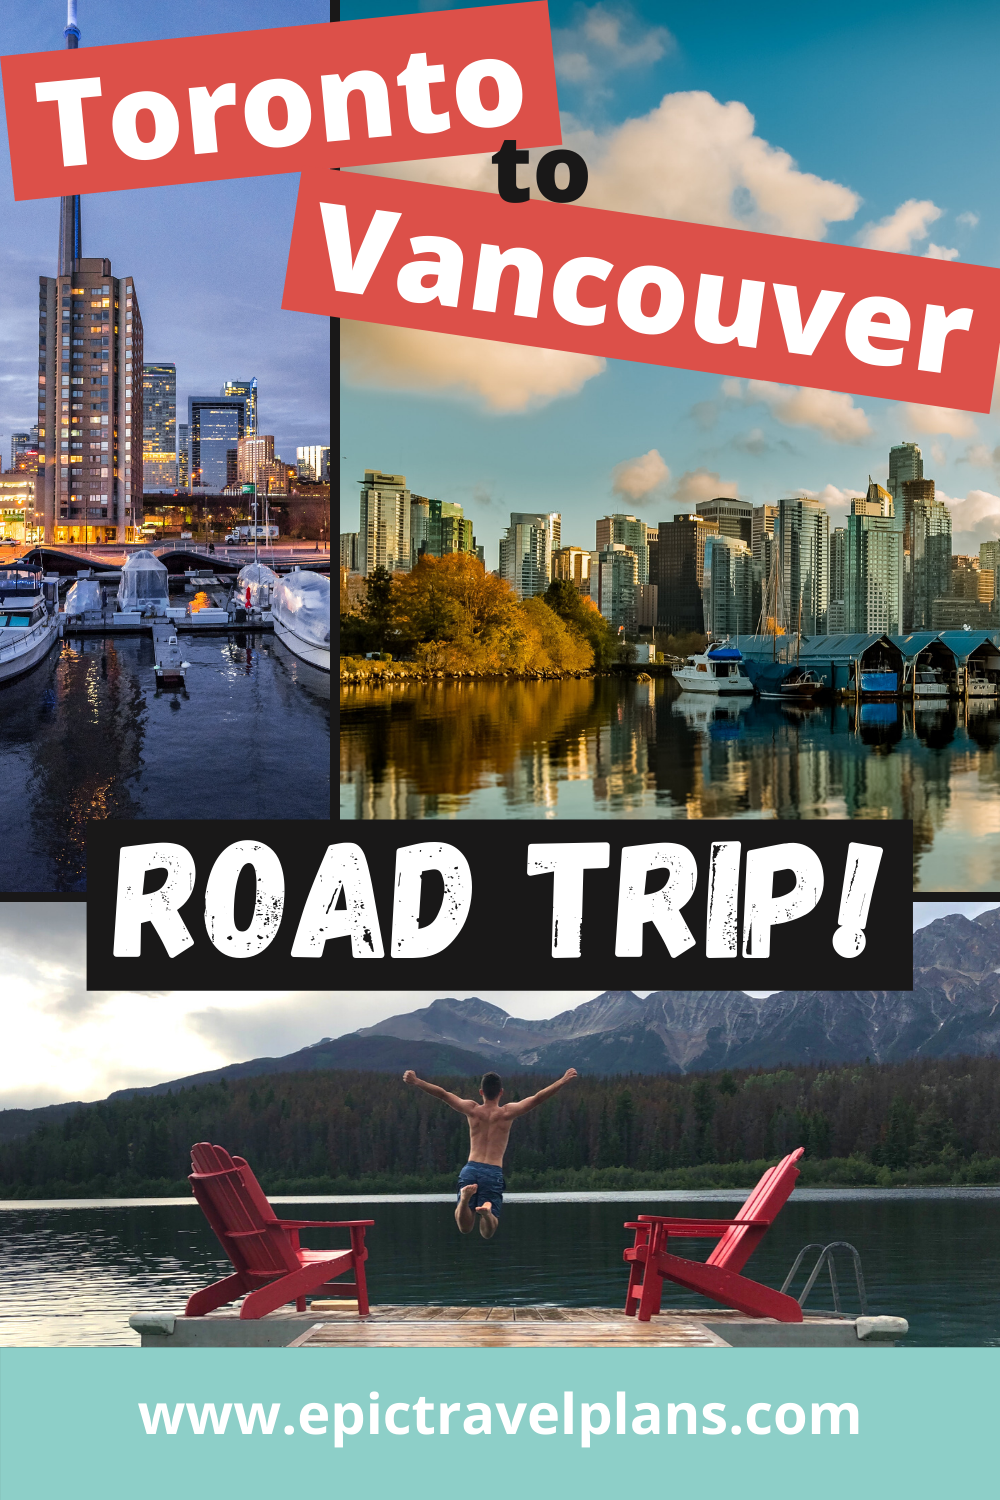 Toronto to Vancouver drive through Canada, cross-Canada road trip map and route ideas